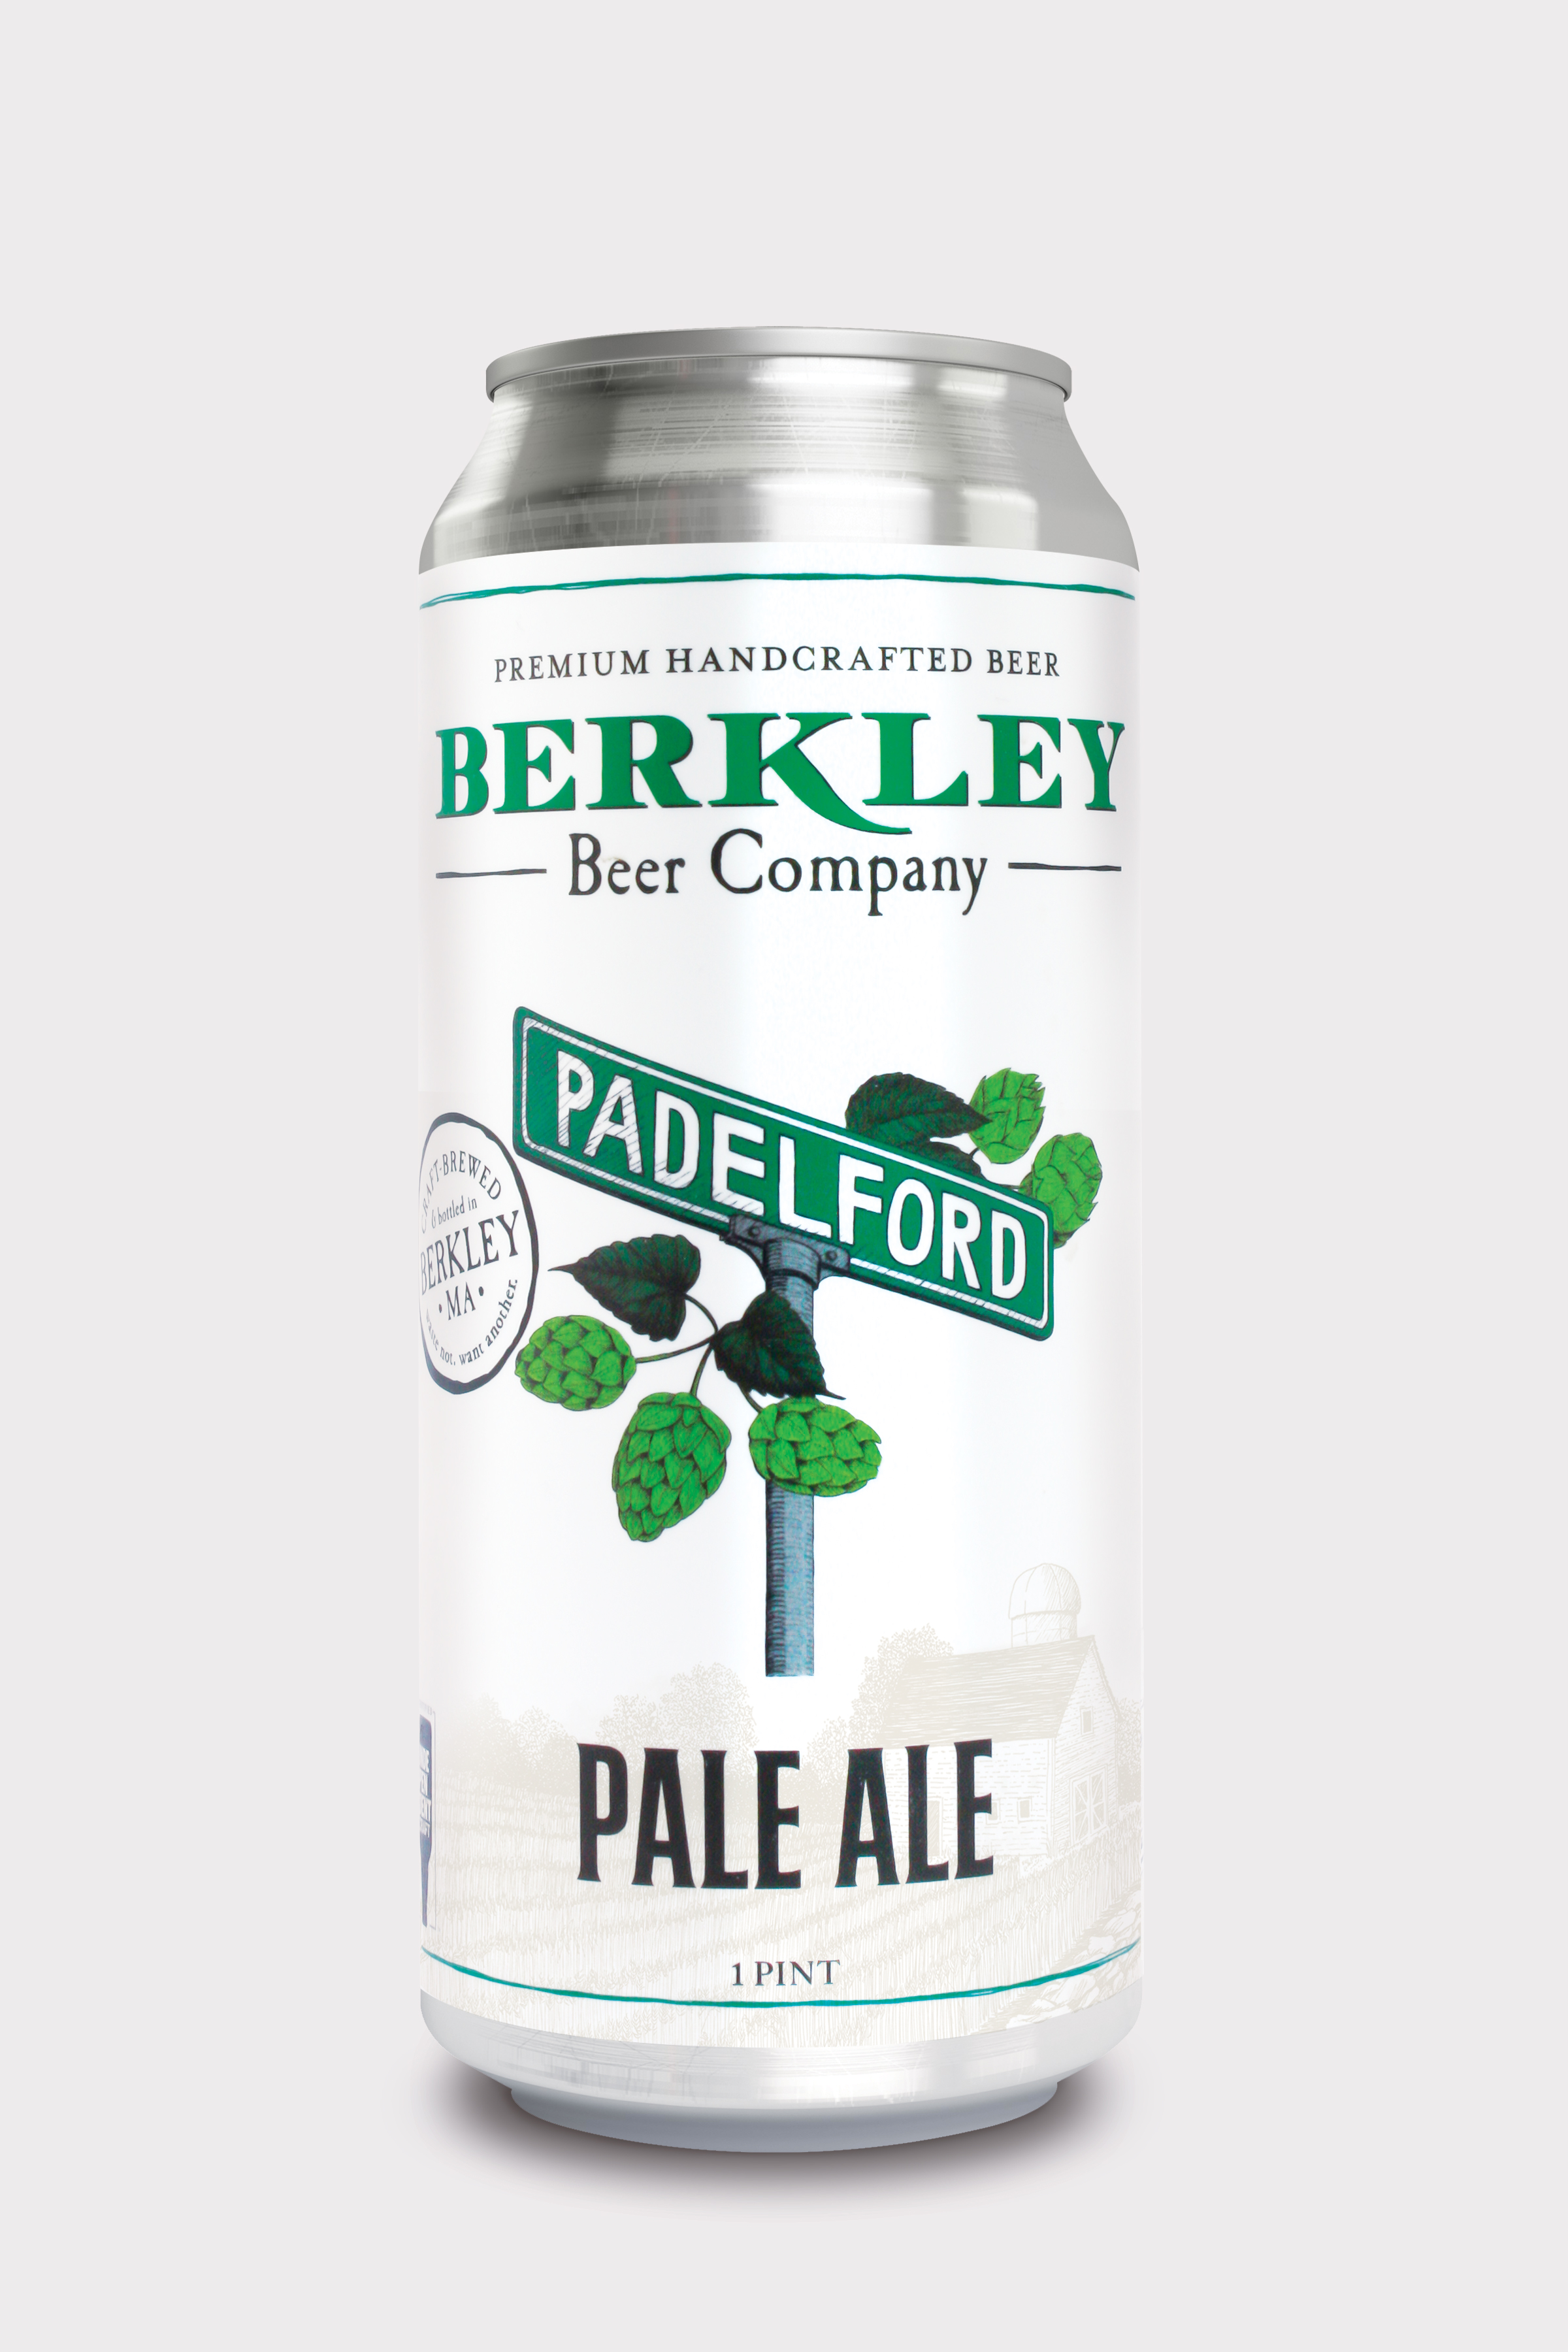 Padelford Pale Ale 5%  A New England-style pale ale with four tropical fruit -forward hops, flavors of juicy pineapple, peach, melon and mango and soft bitterness to balance the malt